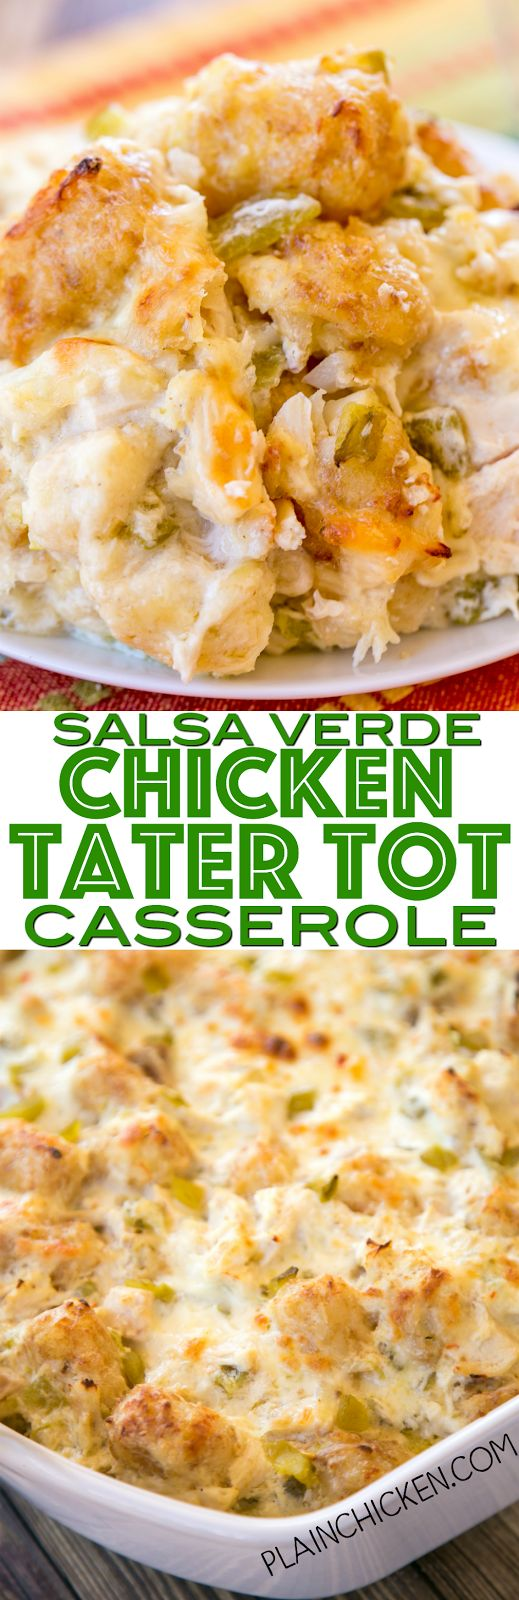 Salsa Verde Chicken Tater Tot Casserole - ridiculously good! Everyone LOVES this easy Mexican casserole!! Chicken, green chiles, sour cream, chicken broth, cumin, flour and butter. No cream of anything soup! We make this at least once a month! SO good!!